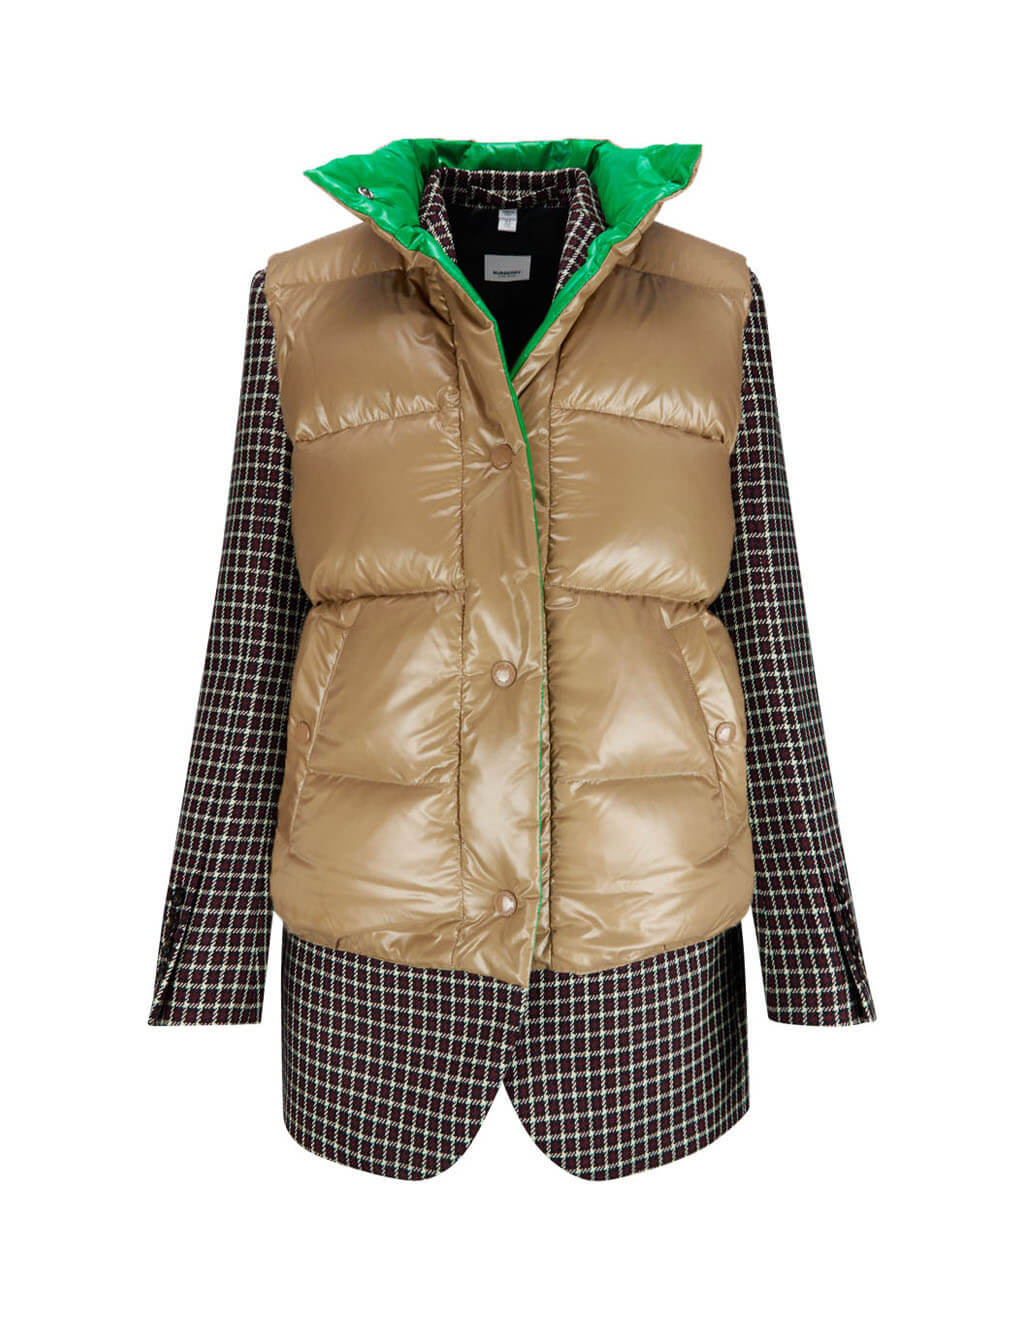 Burberry Women's Tartan Jacket With Detachable Gilet 4562571a5680